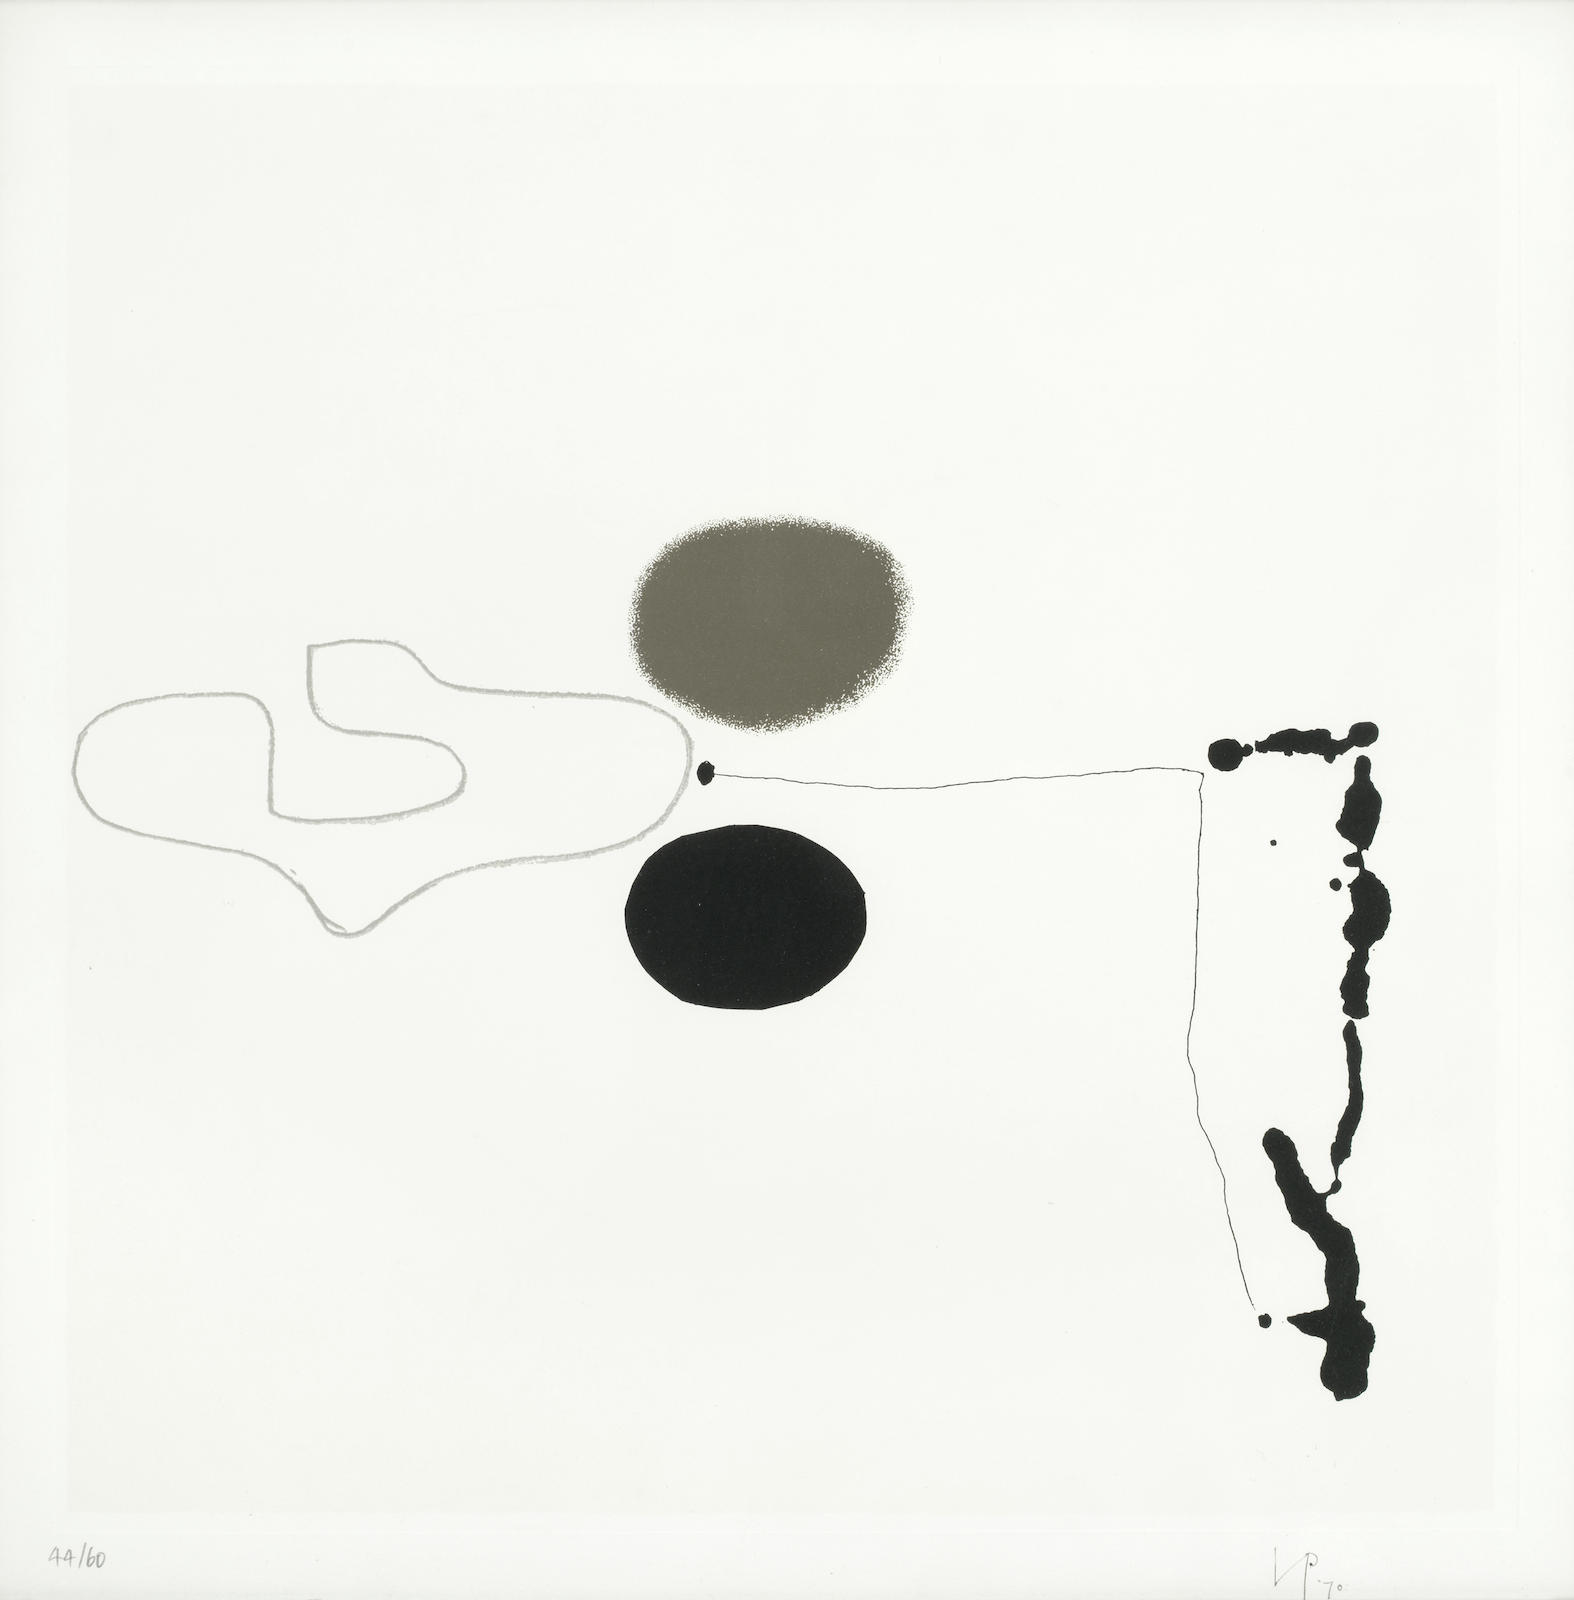 Victor Pasmore-Linear Development 2, from 'Points of Contact - Linear Developments'-1970